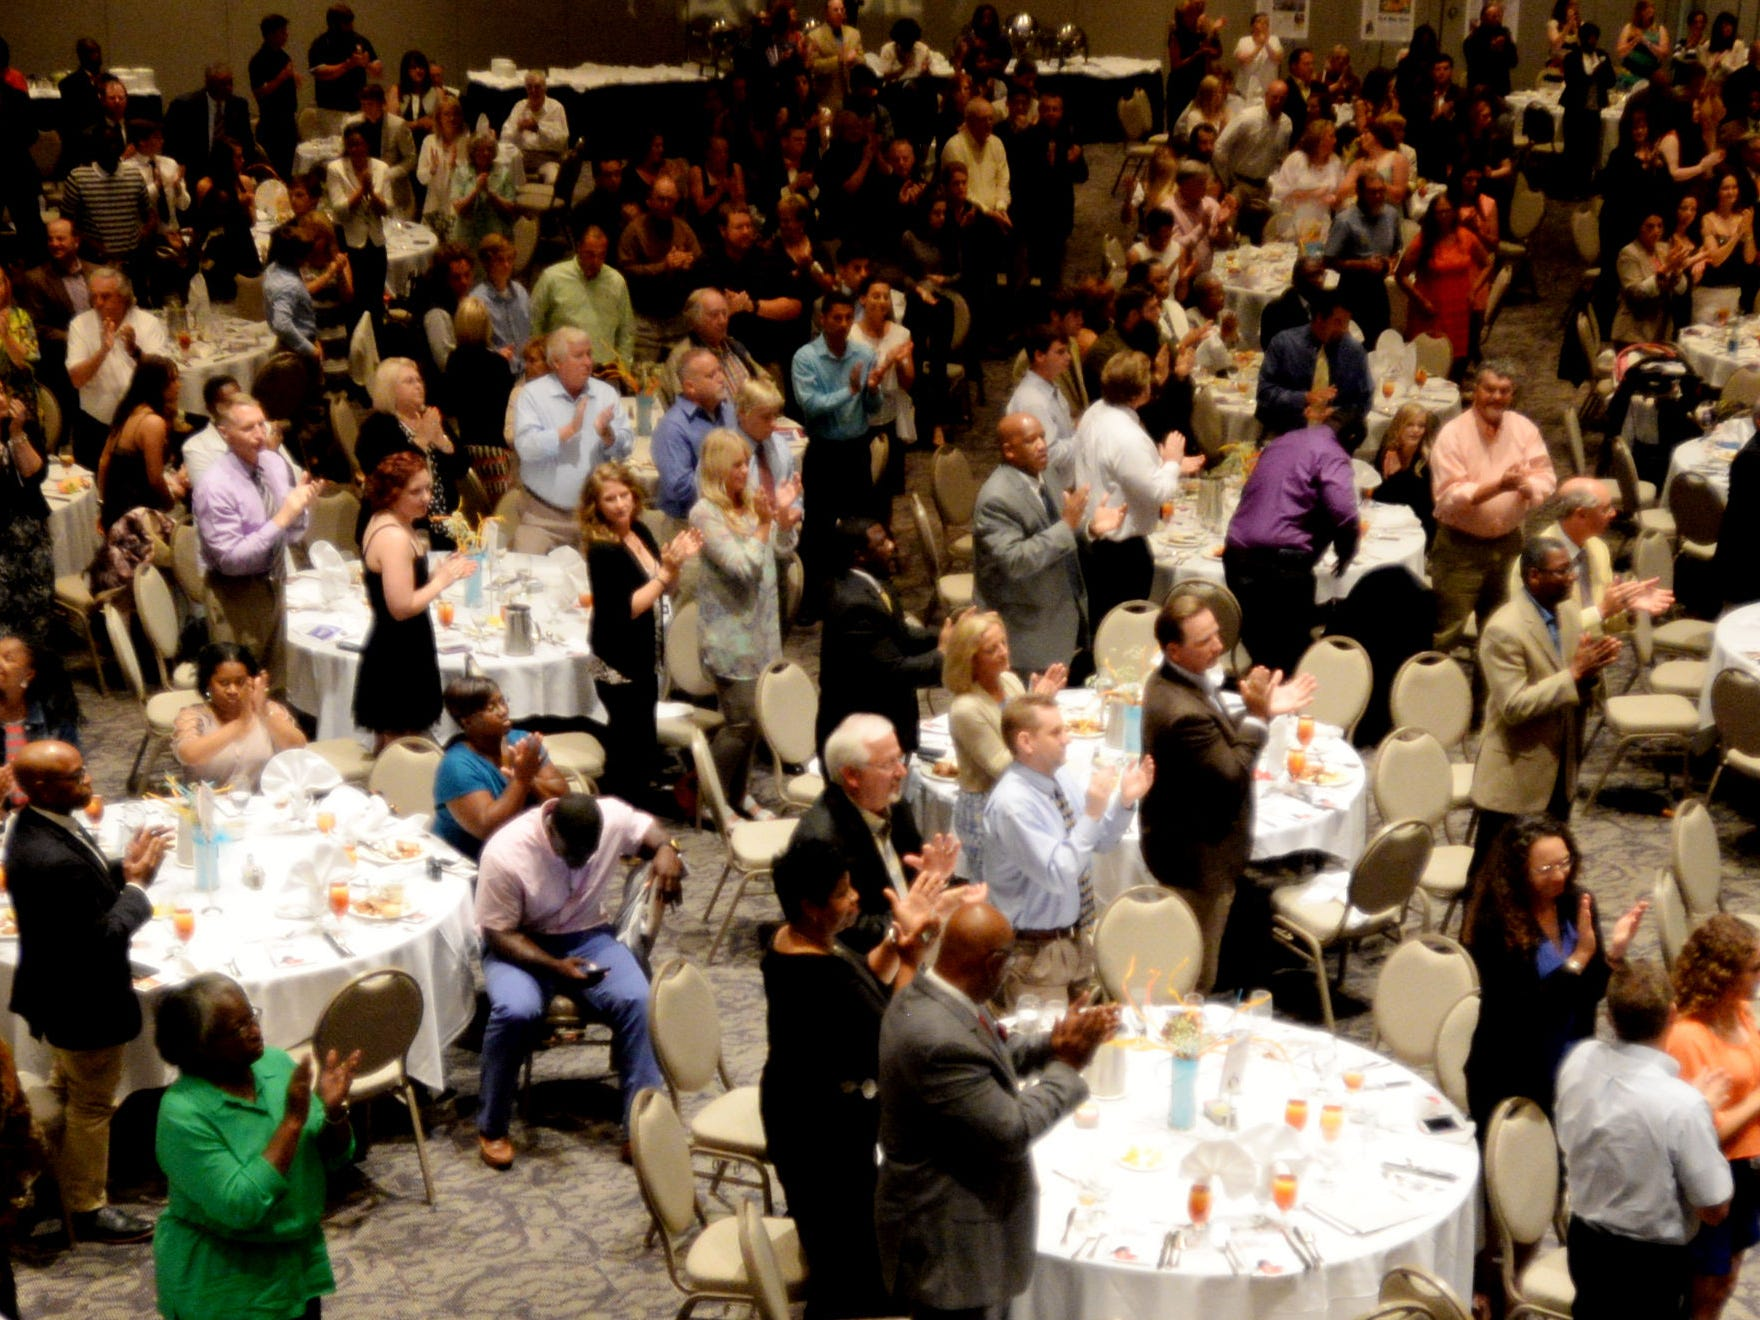 People fill the room during The Times' inaugural Best of Northwest Louisiana Preps banquet Tuesday evening at the Shreveport Convention Center.